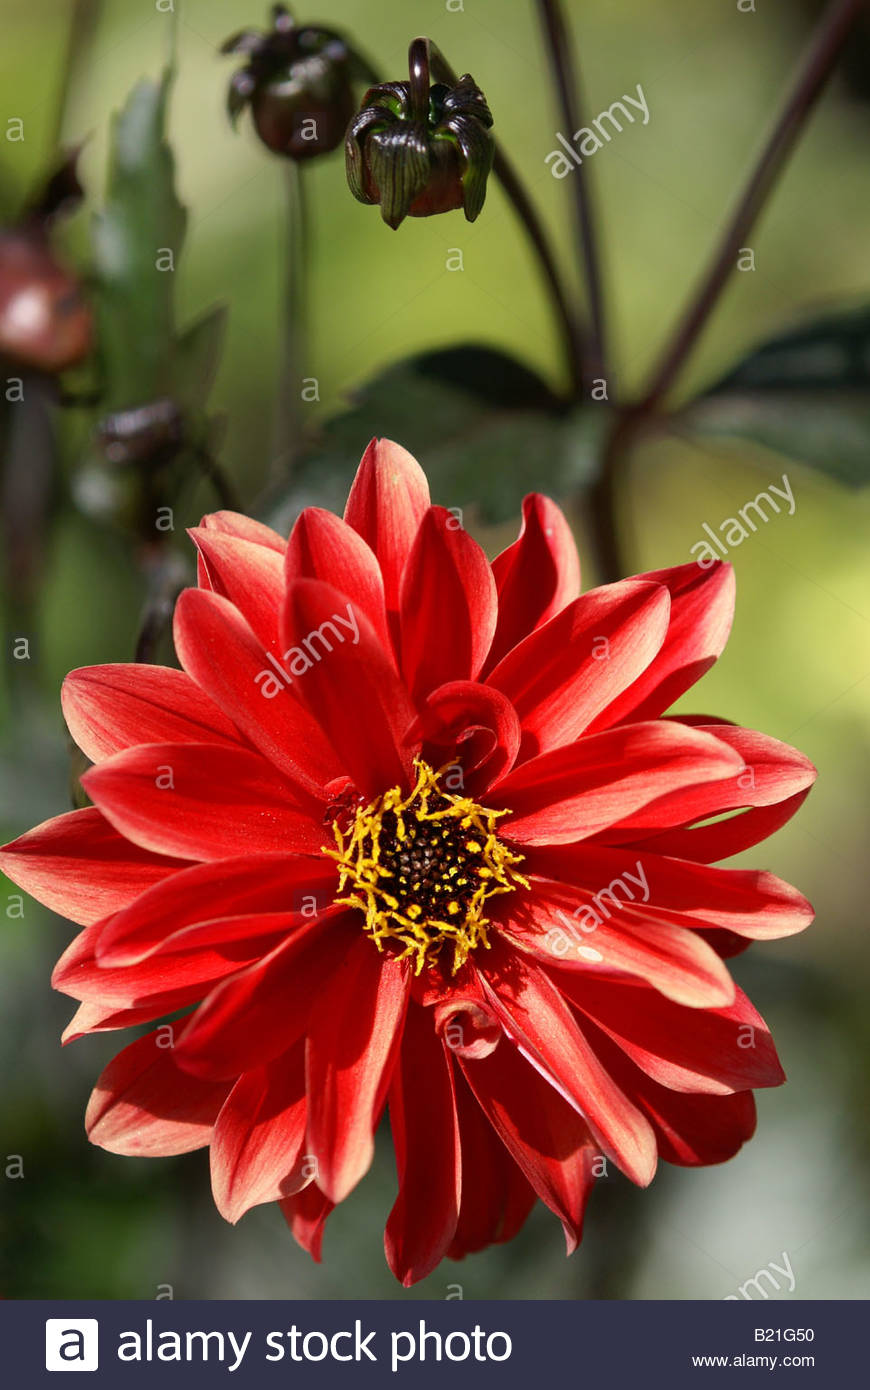 dahlia-bishop-of-llandaff-B21G50.jpg